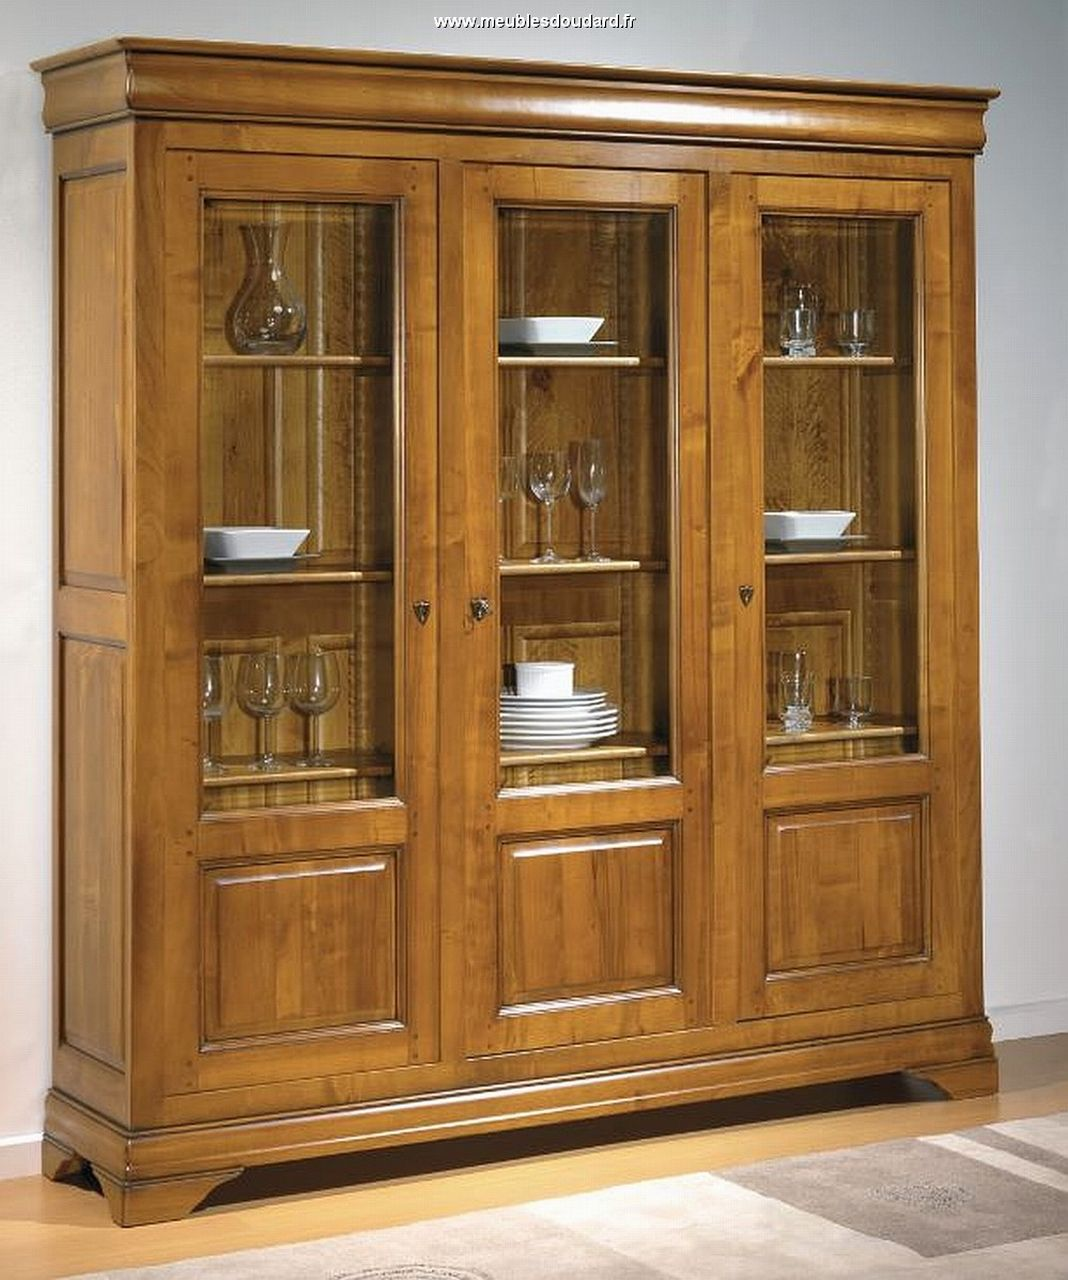 biblioth que merisier armoire biblioth que meuble de rangement biblioth que vitrine biblioth que. Black Bedroom Furniture Sets. Home Design Ideas